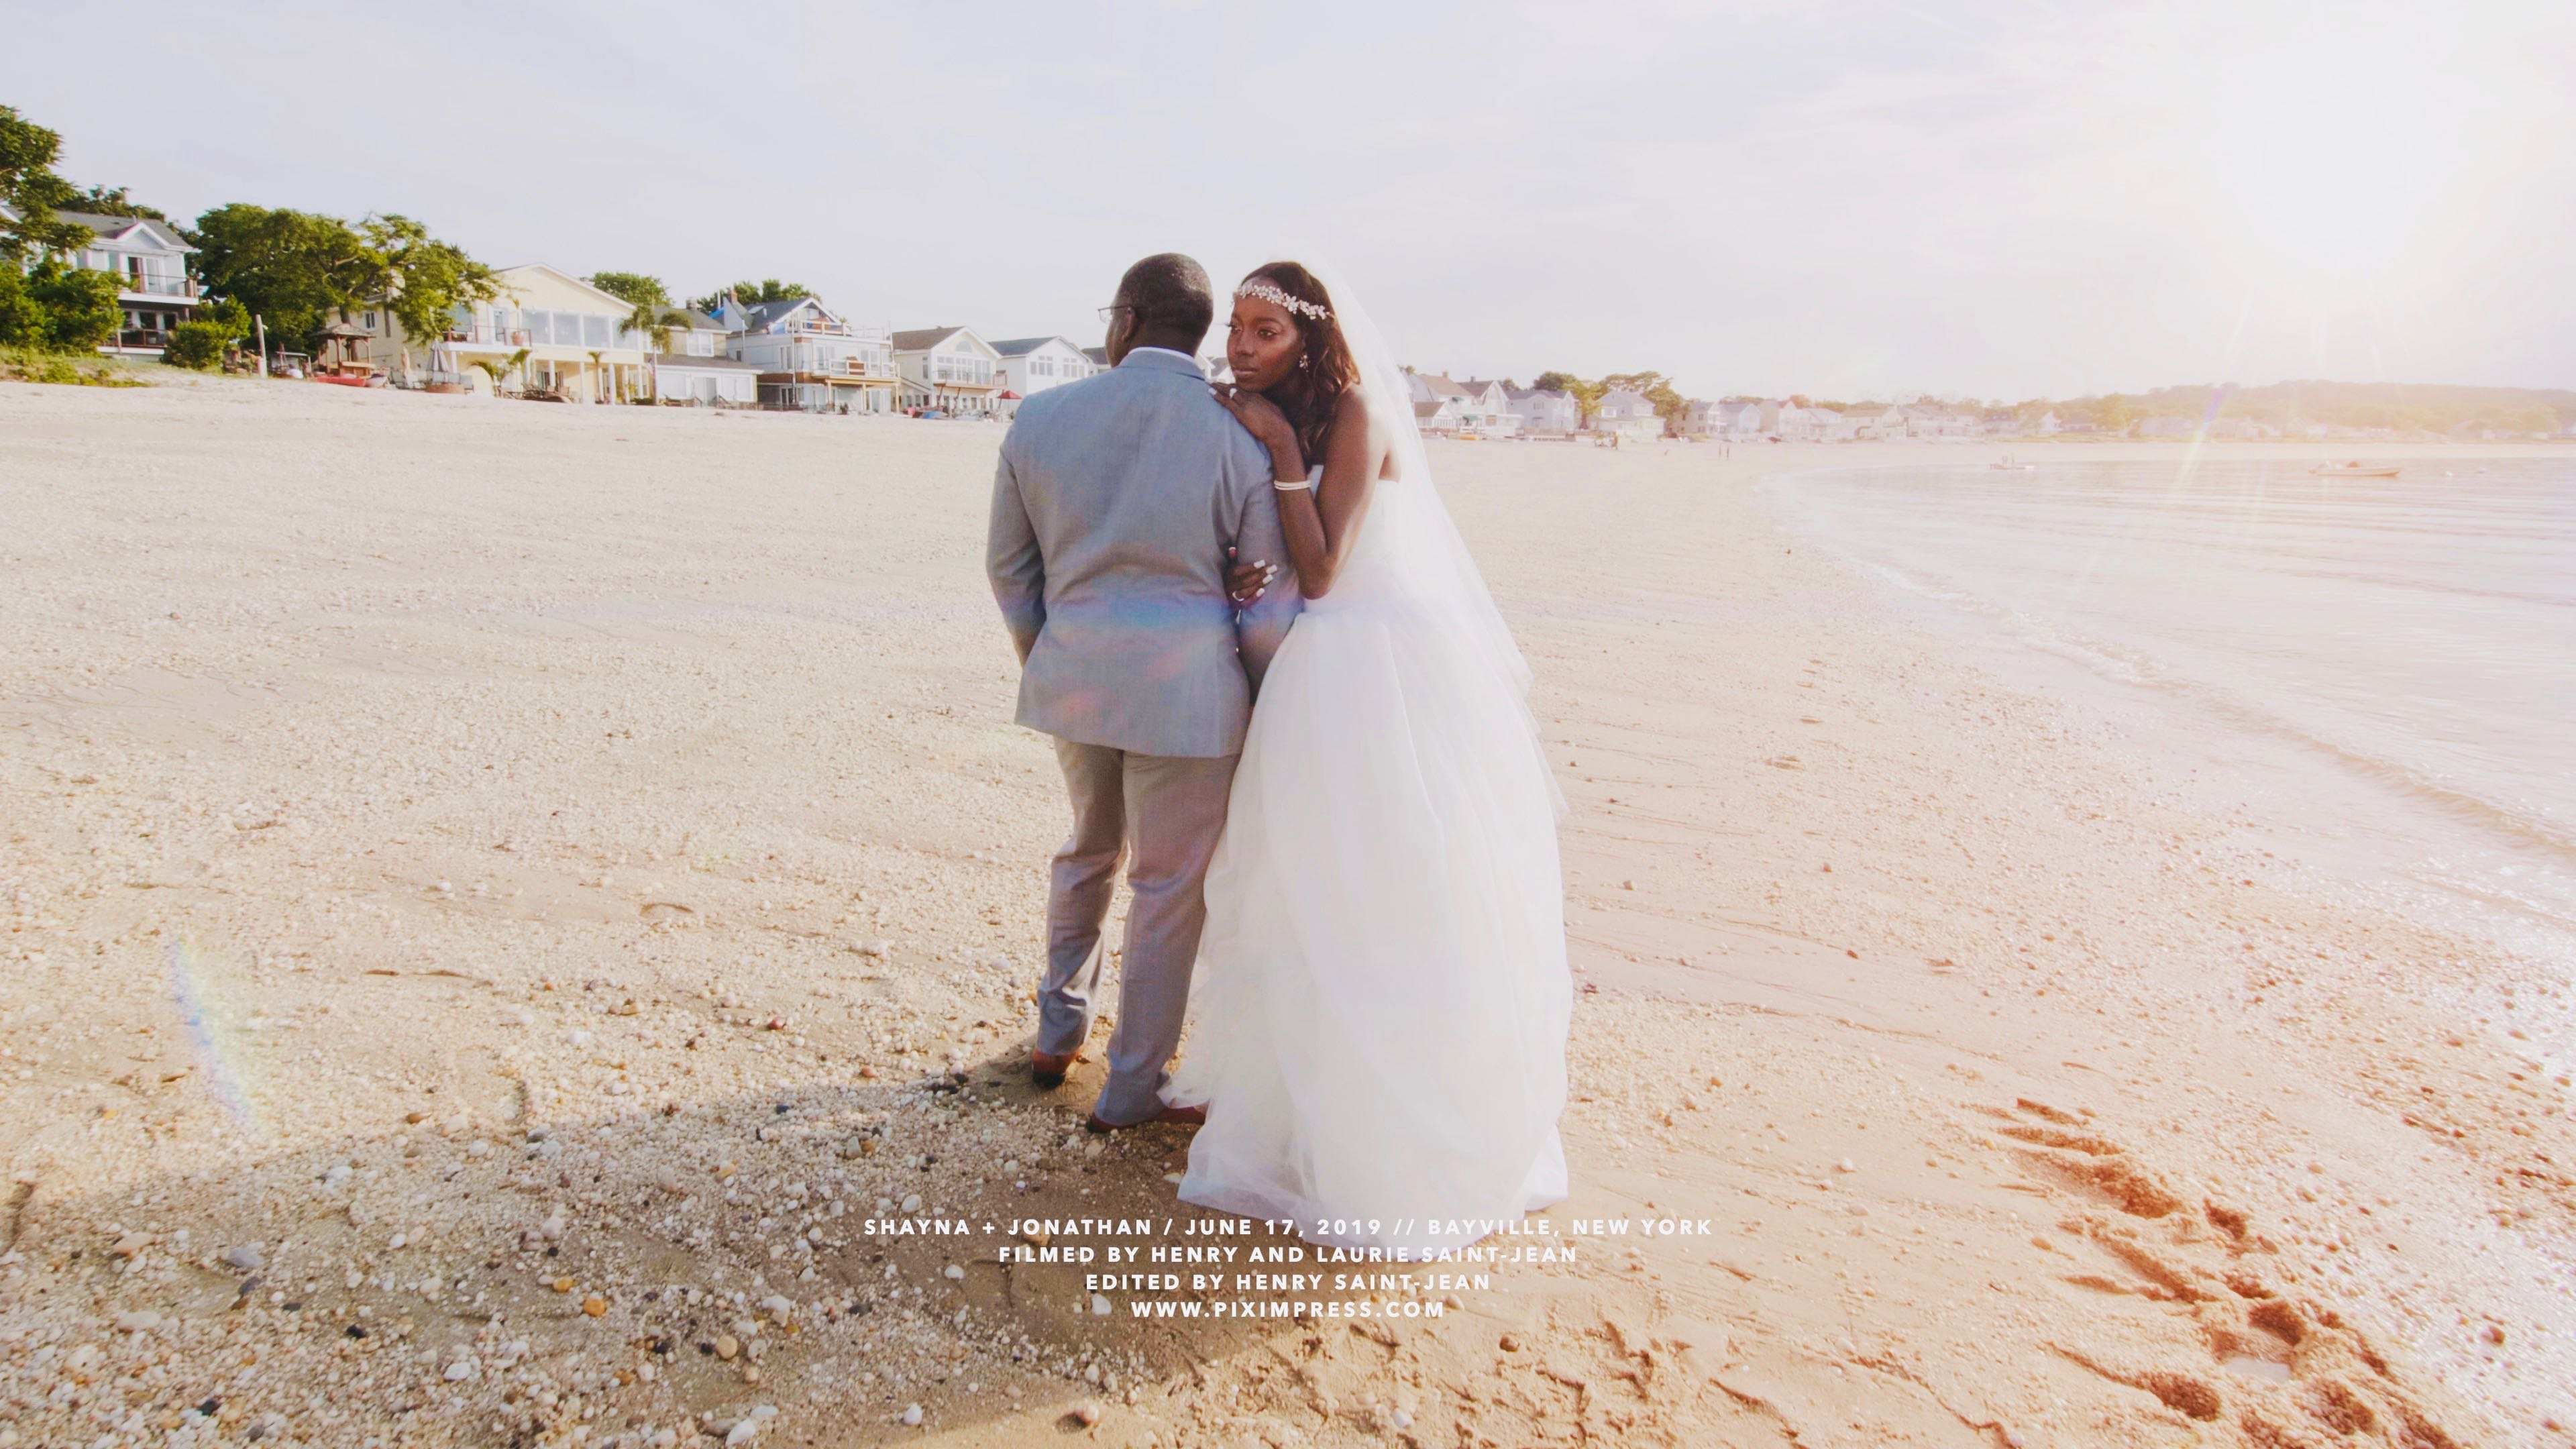 Shayna + Jonathan | Bayville, New York | The Crescent Beach